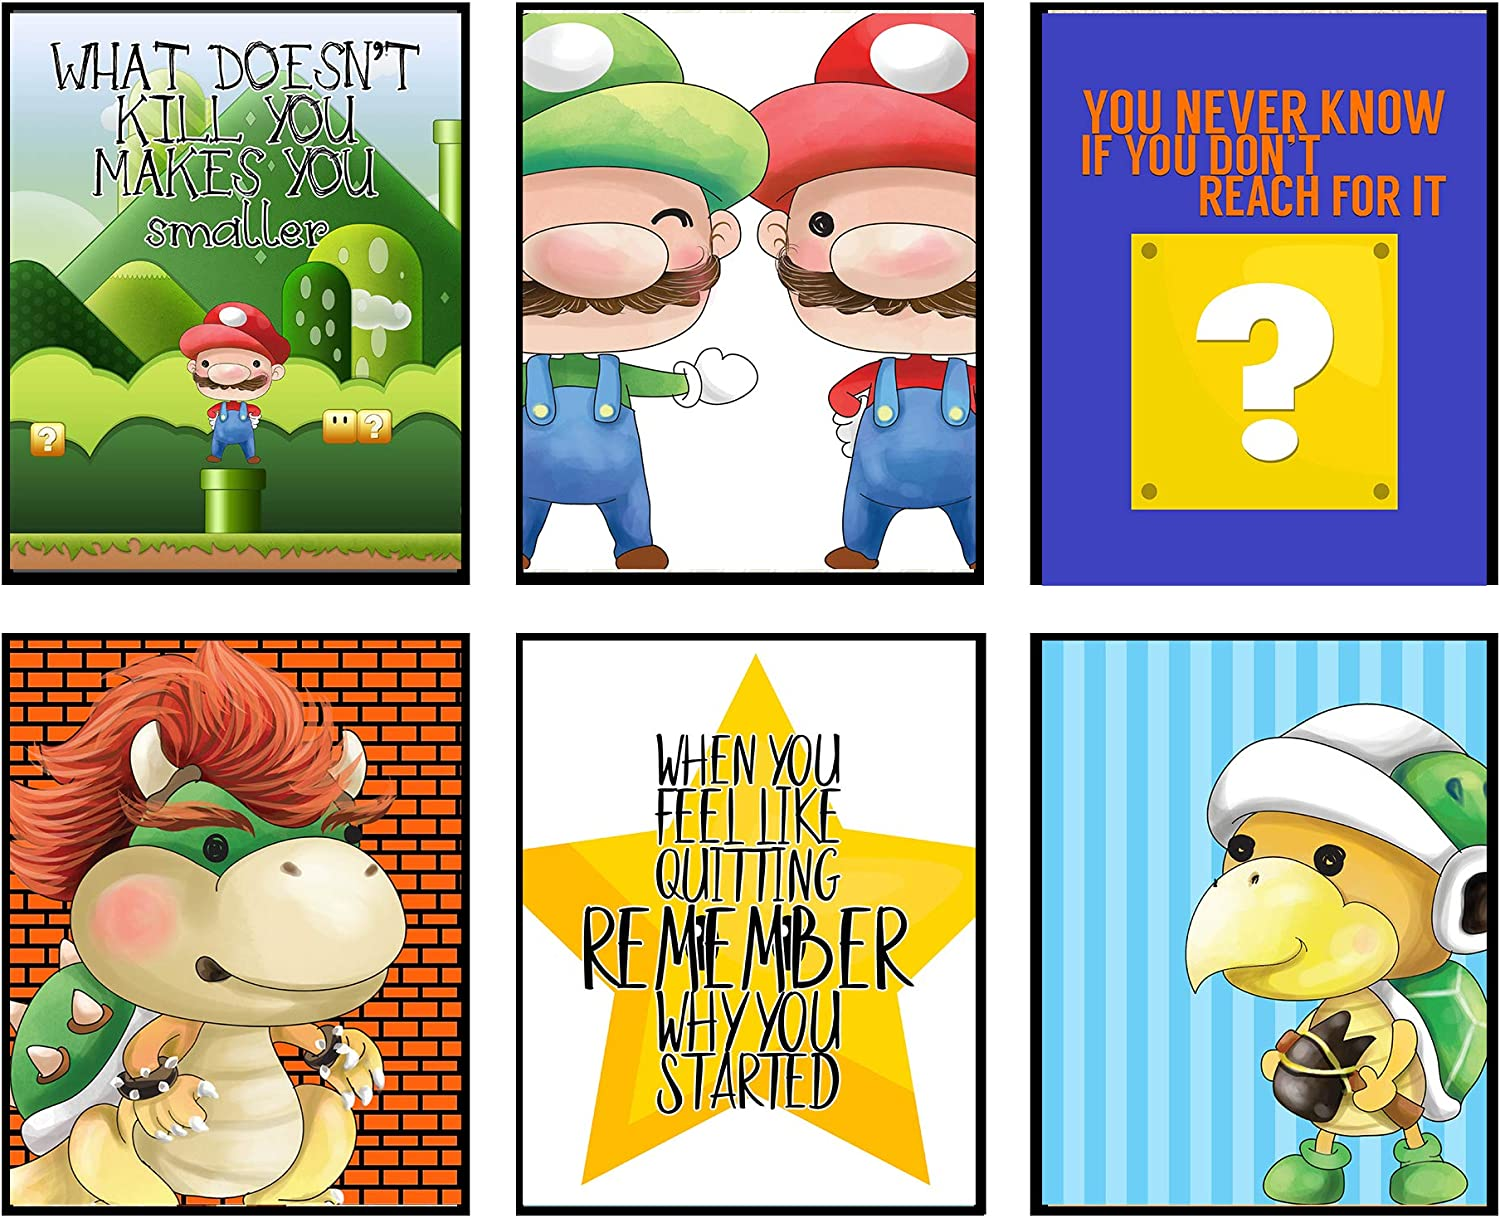 Plumbers Need Love Too - Video Gamer Room Wall Art Prints Decor (Reach for It)